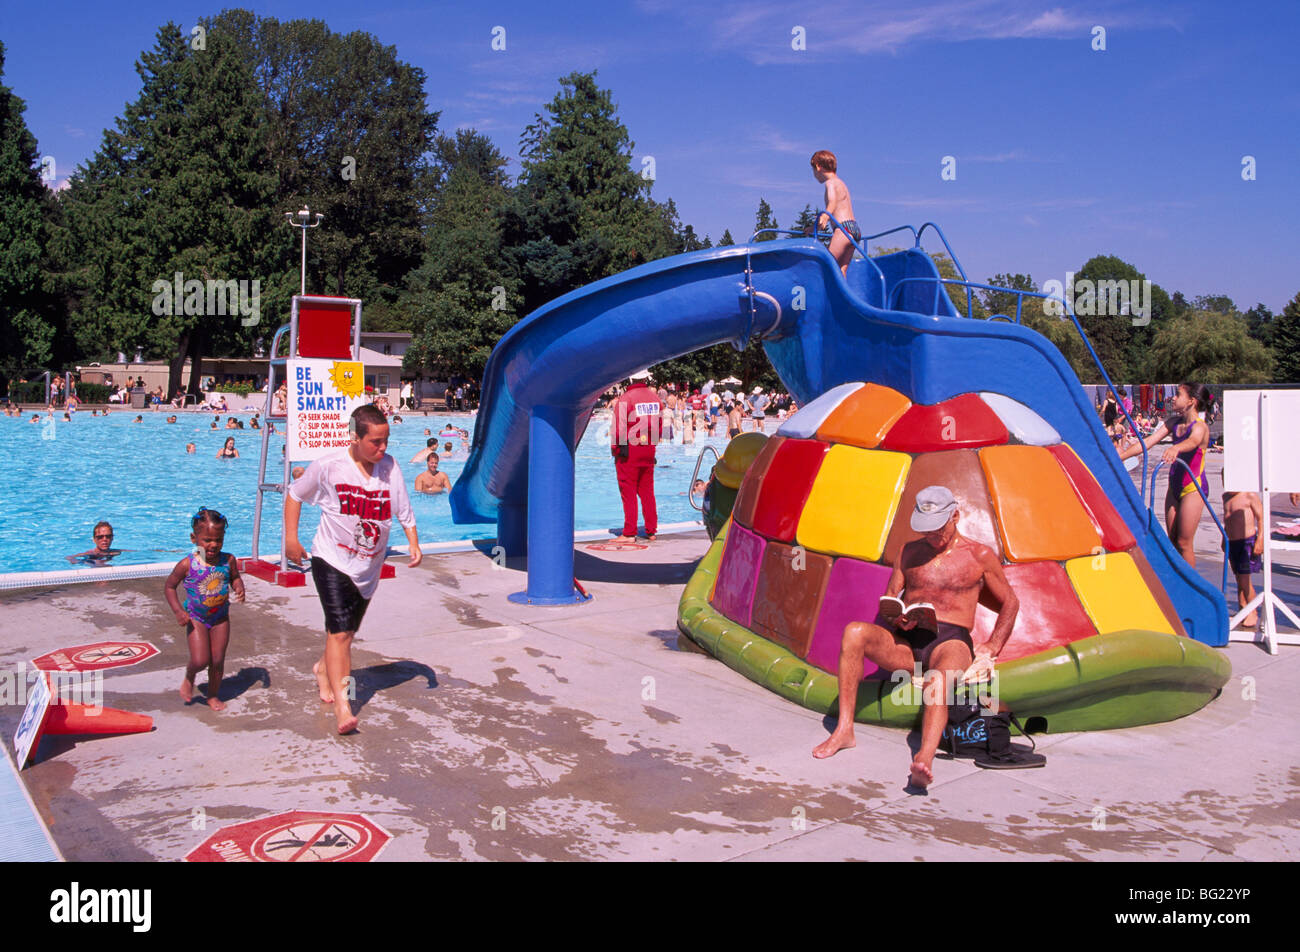 Children 39 S Water Slide At Outdoor Swimming Pool Stanley Park Stock Photo Royalty Free Image